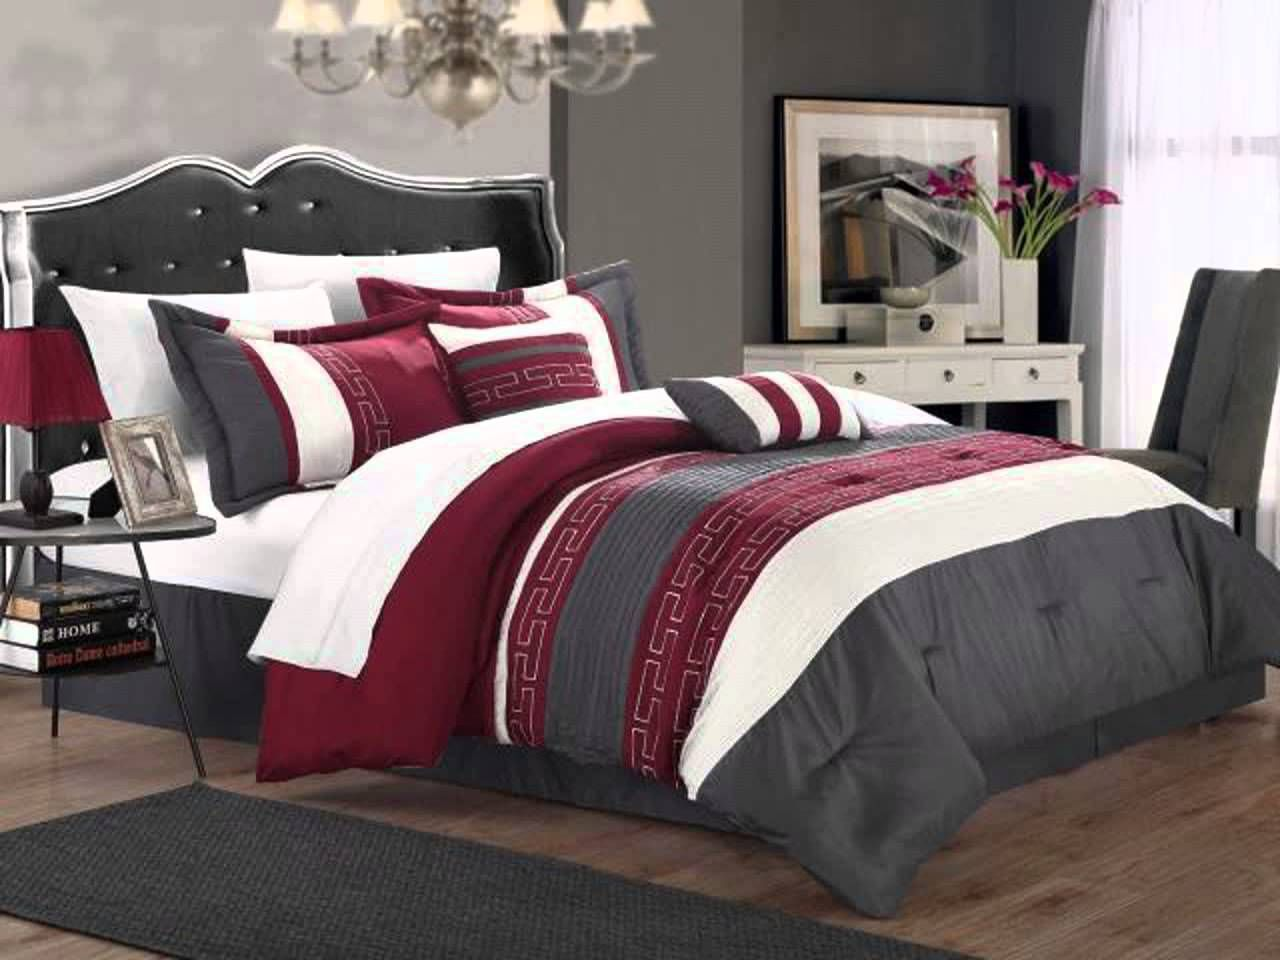 Best Burgundy Doona Cover Google Search Burgundy Bedroom 640 x 480